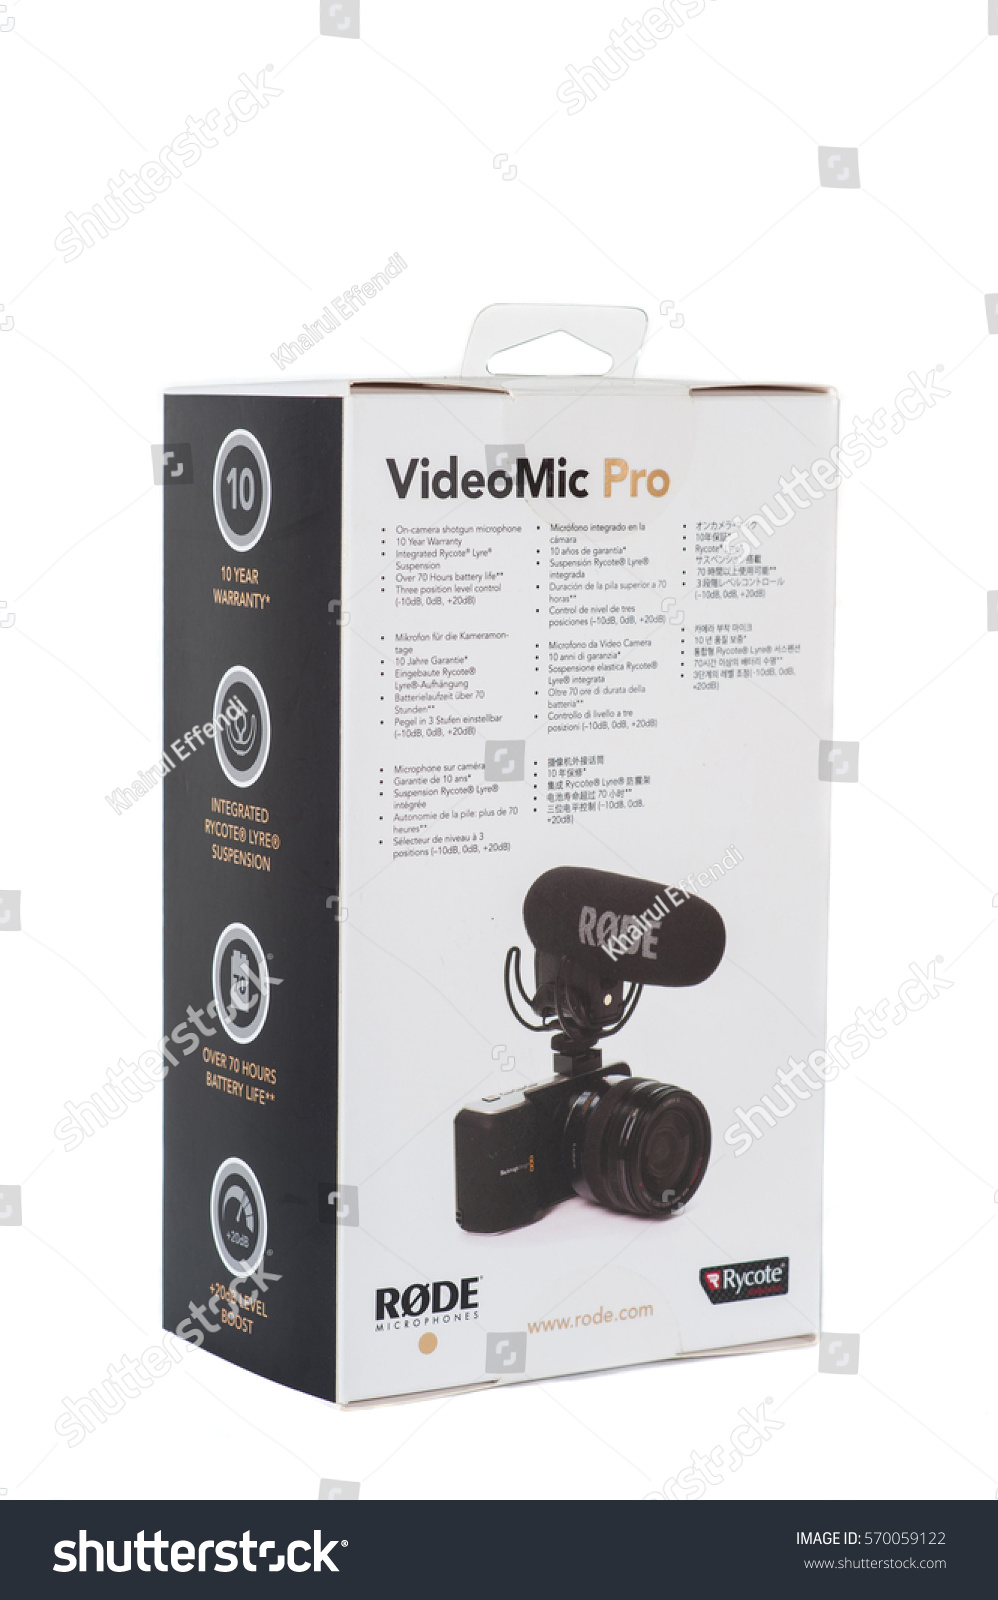 Rode Microphone Videomic Pro Rycote Kuala Lumpur Malaysia January 31 2017 Stock Photo Edit Now With Box On